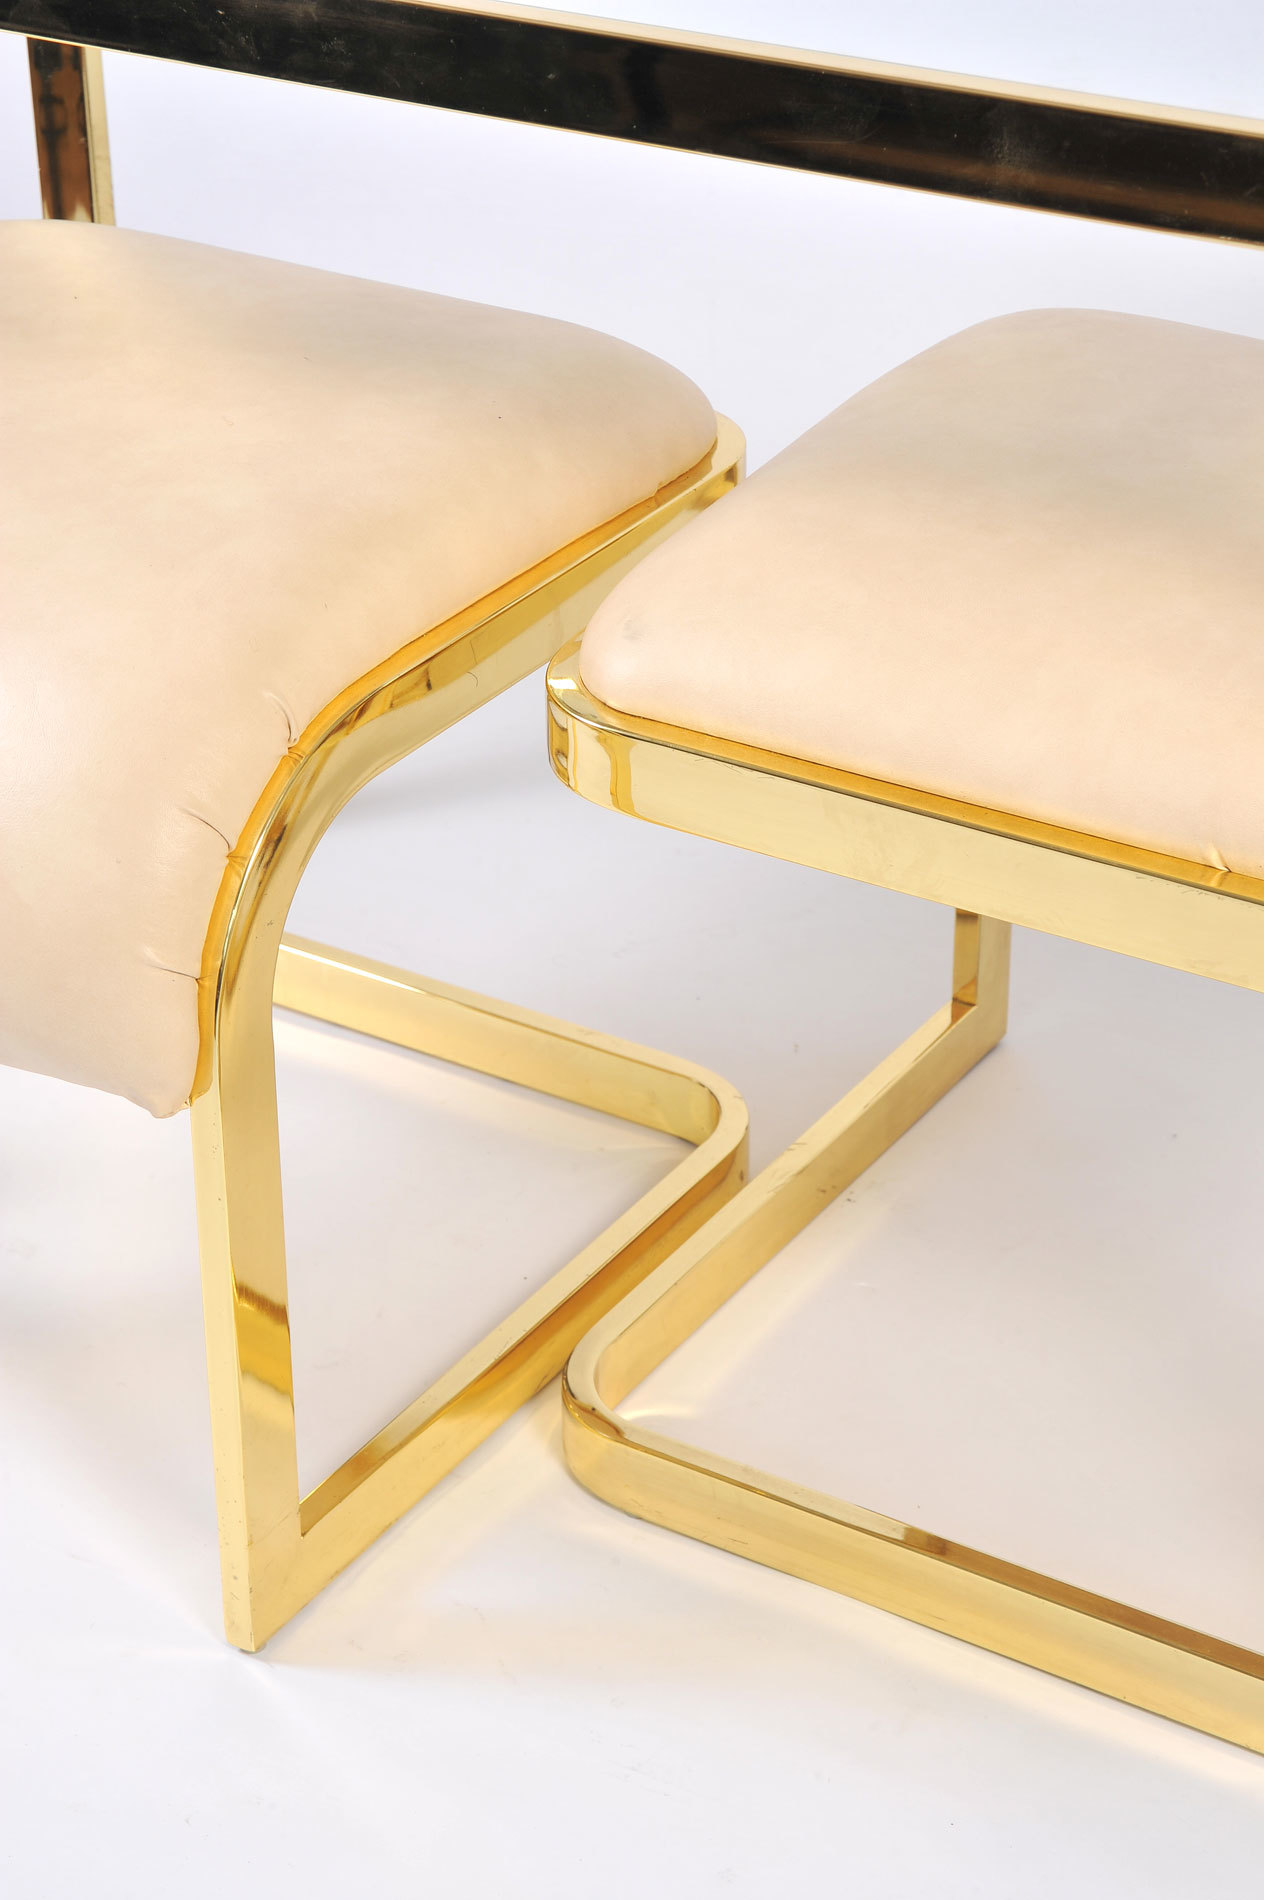 Us Brass Desk And Stools 05